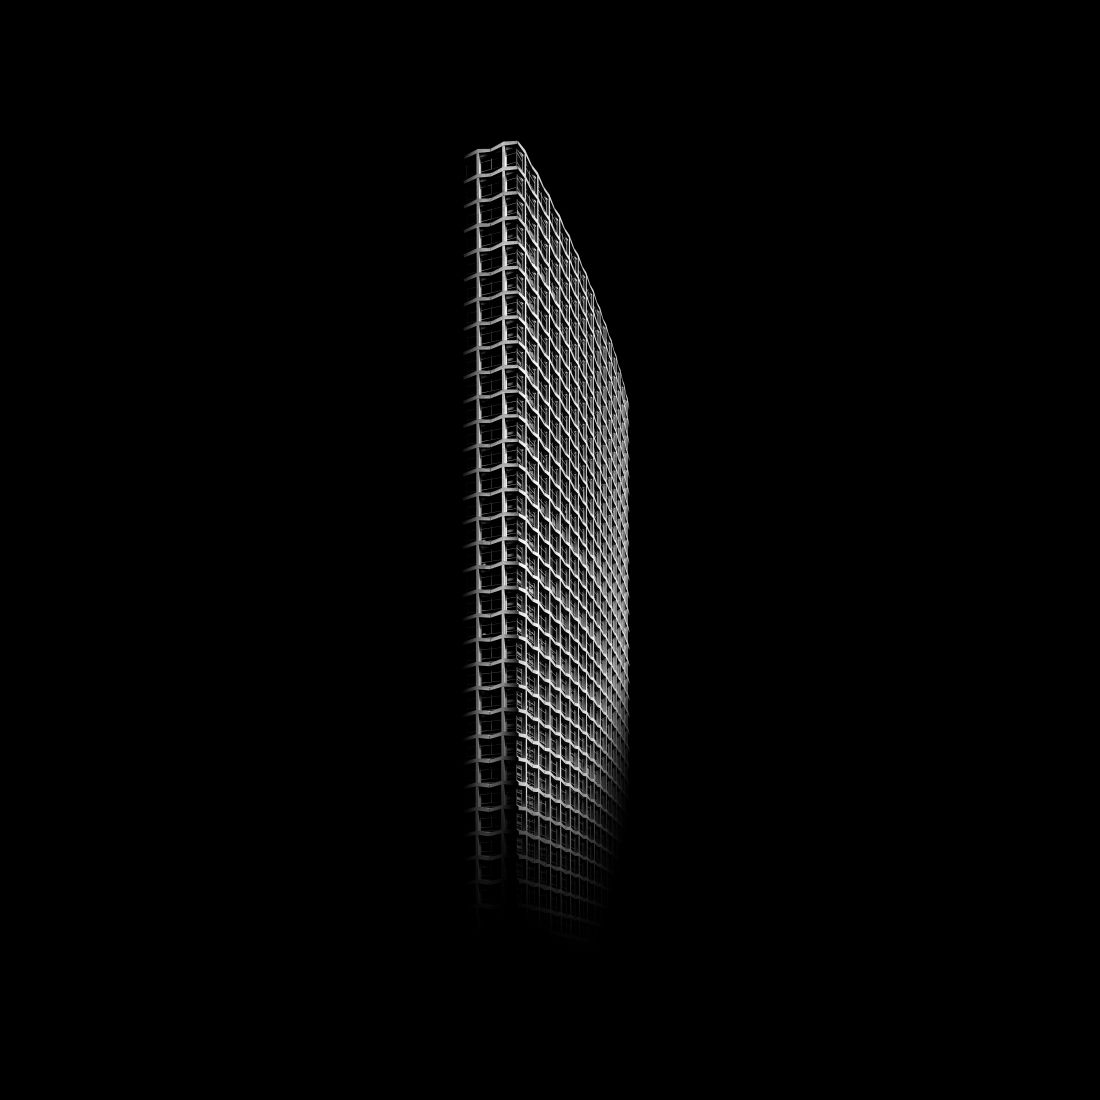 Structures © Jonathan Walland, United Kingdom, Finalist, Professional, Architecture, 2020 Sony World Photography Awards